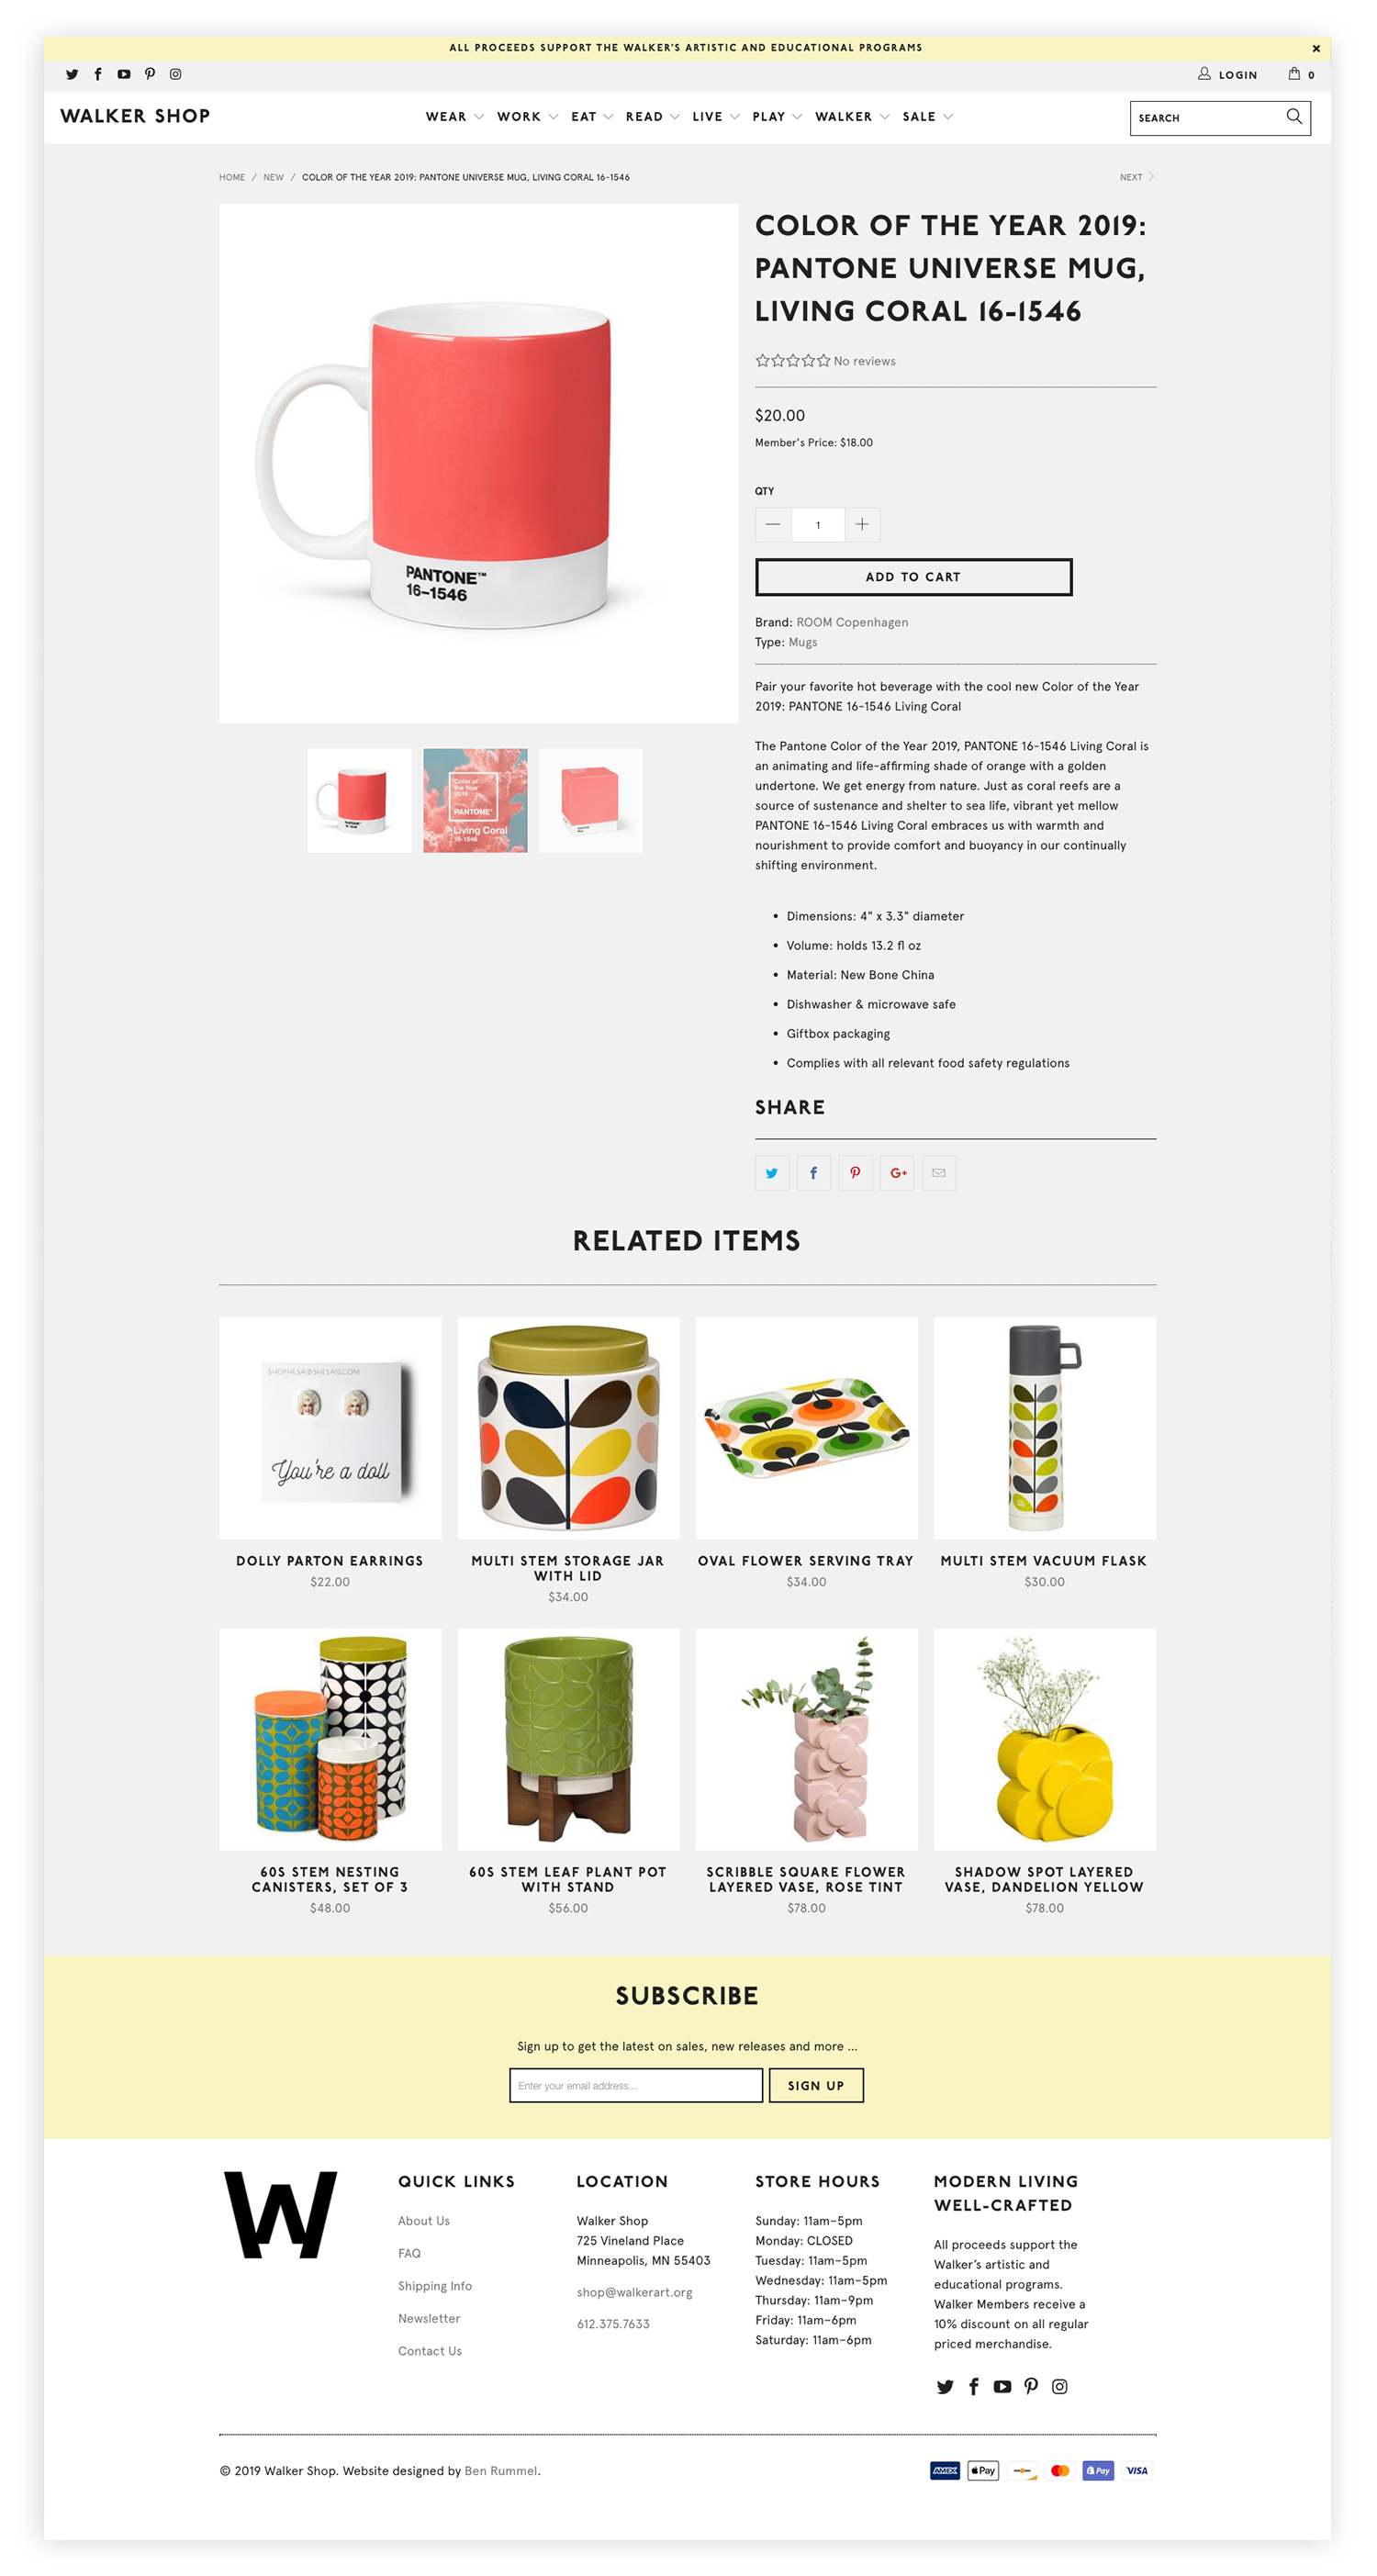 walker-shop-site-product-page-new-ben-rummel-design.png